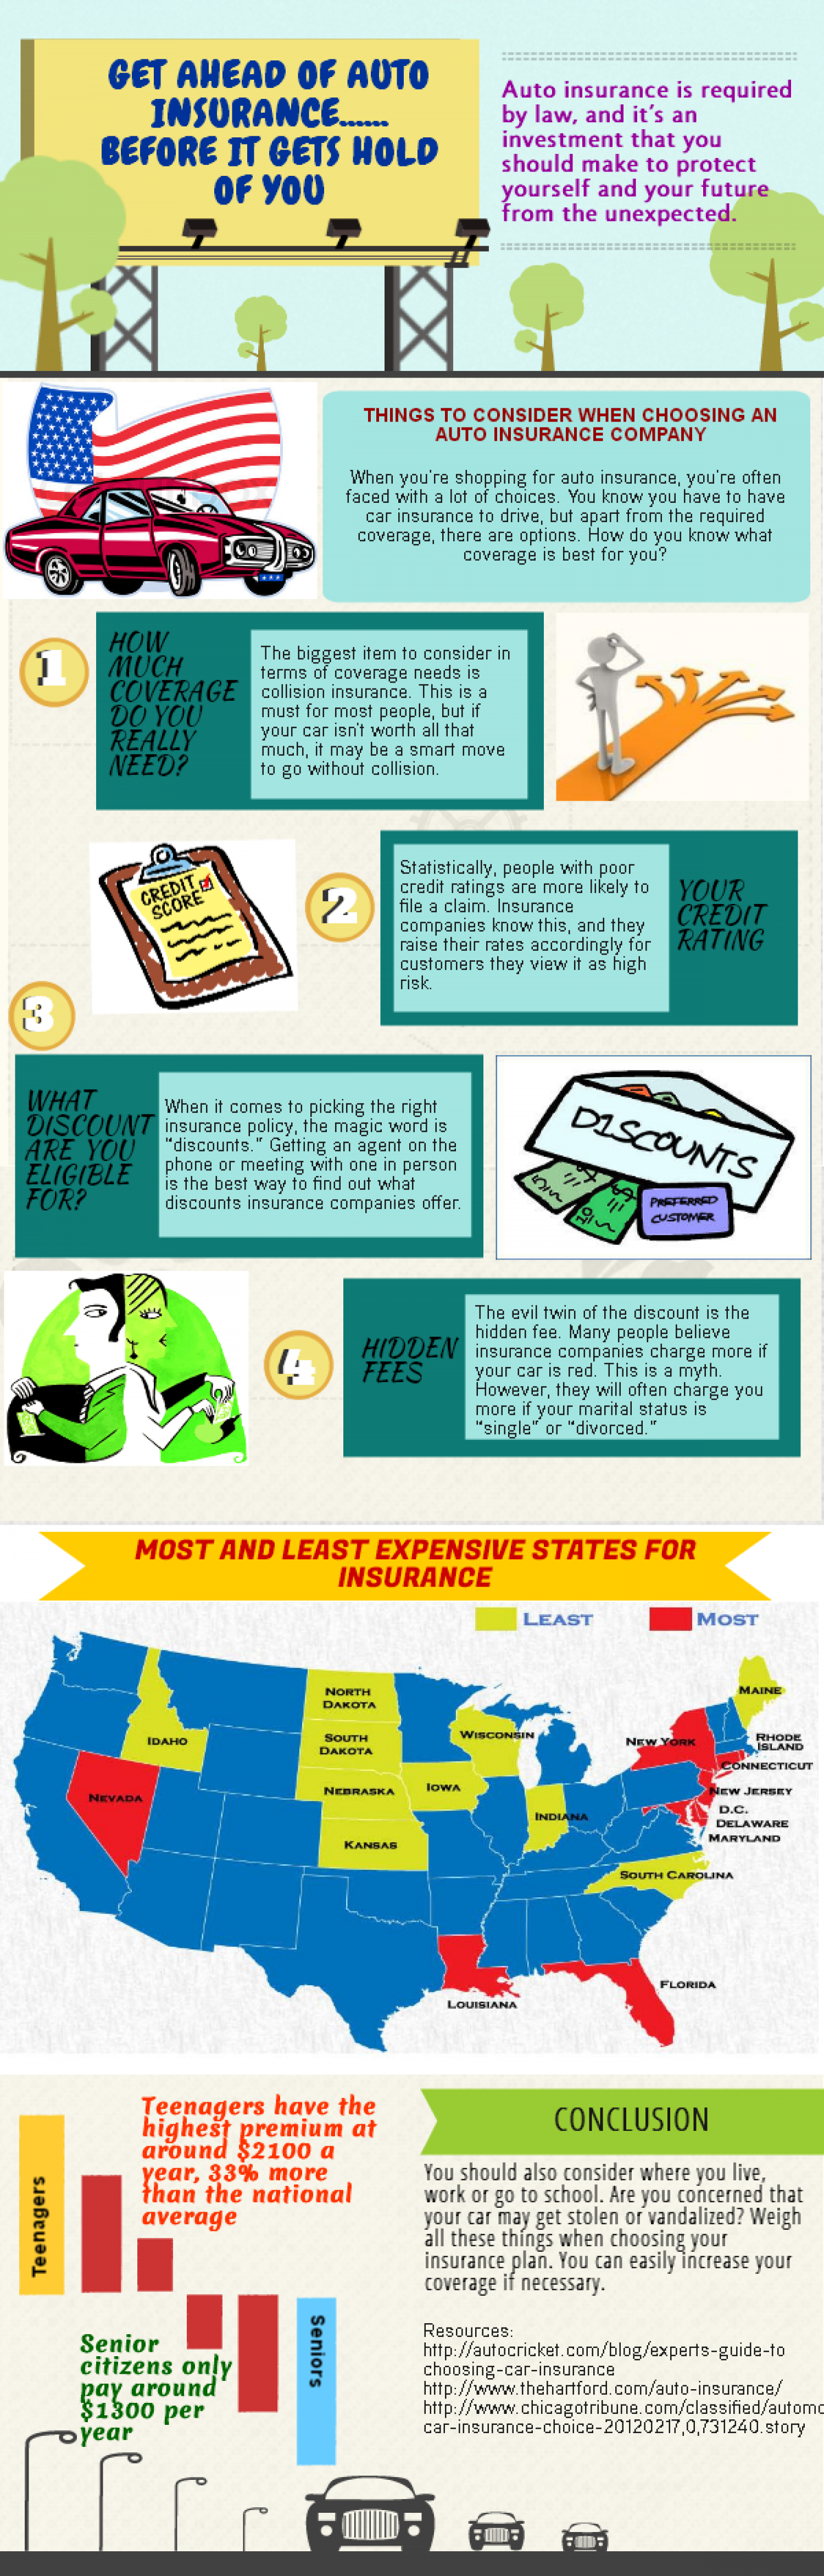 Get Ahead Of Auto Insurance..... Before It Gets Hold Of You Infographic